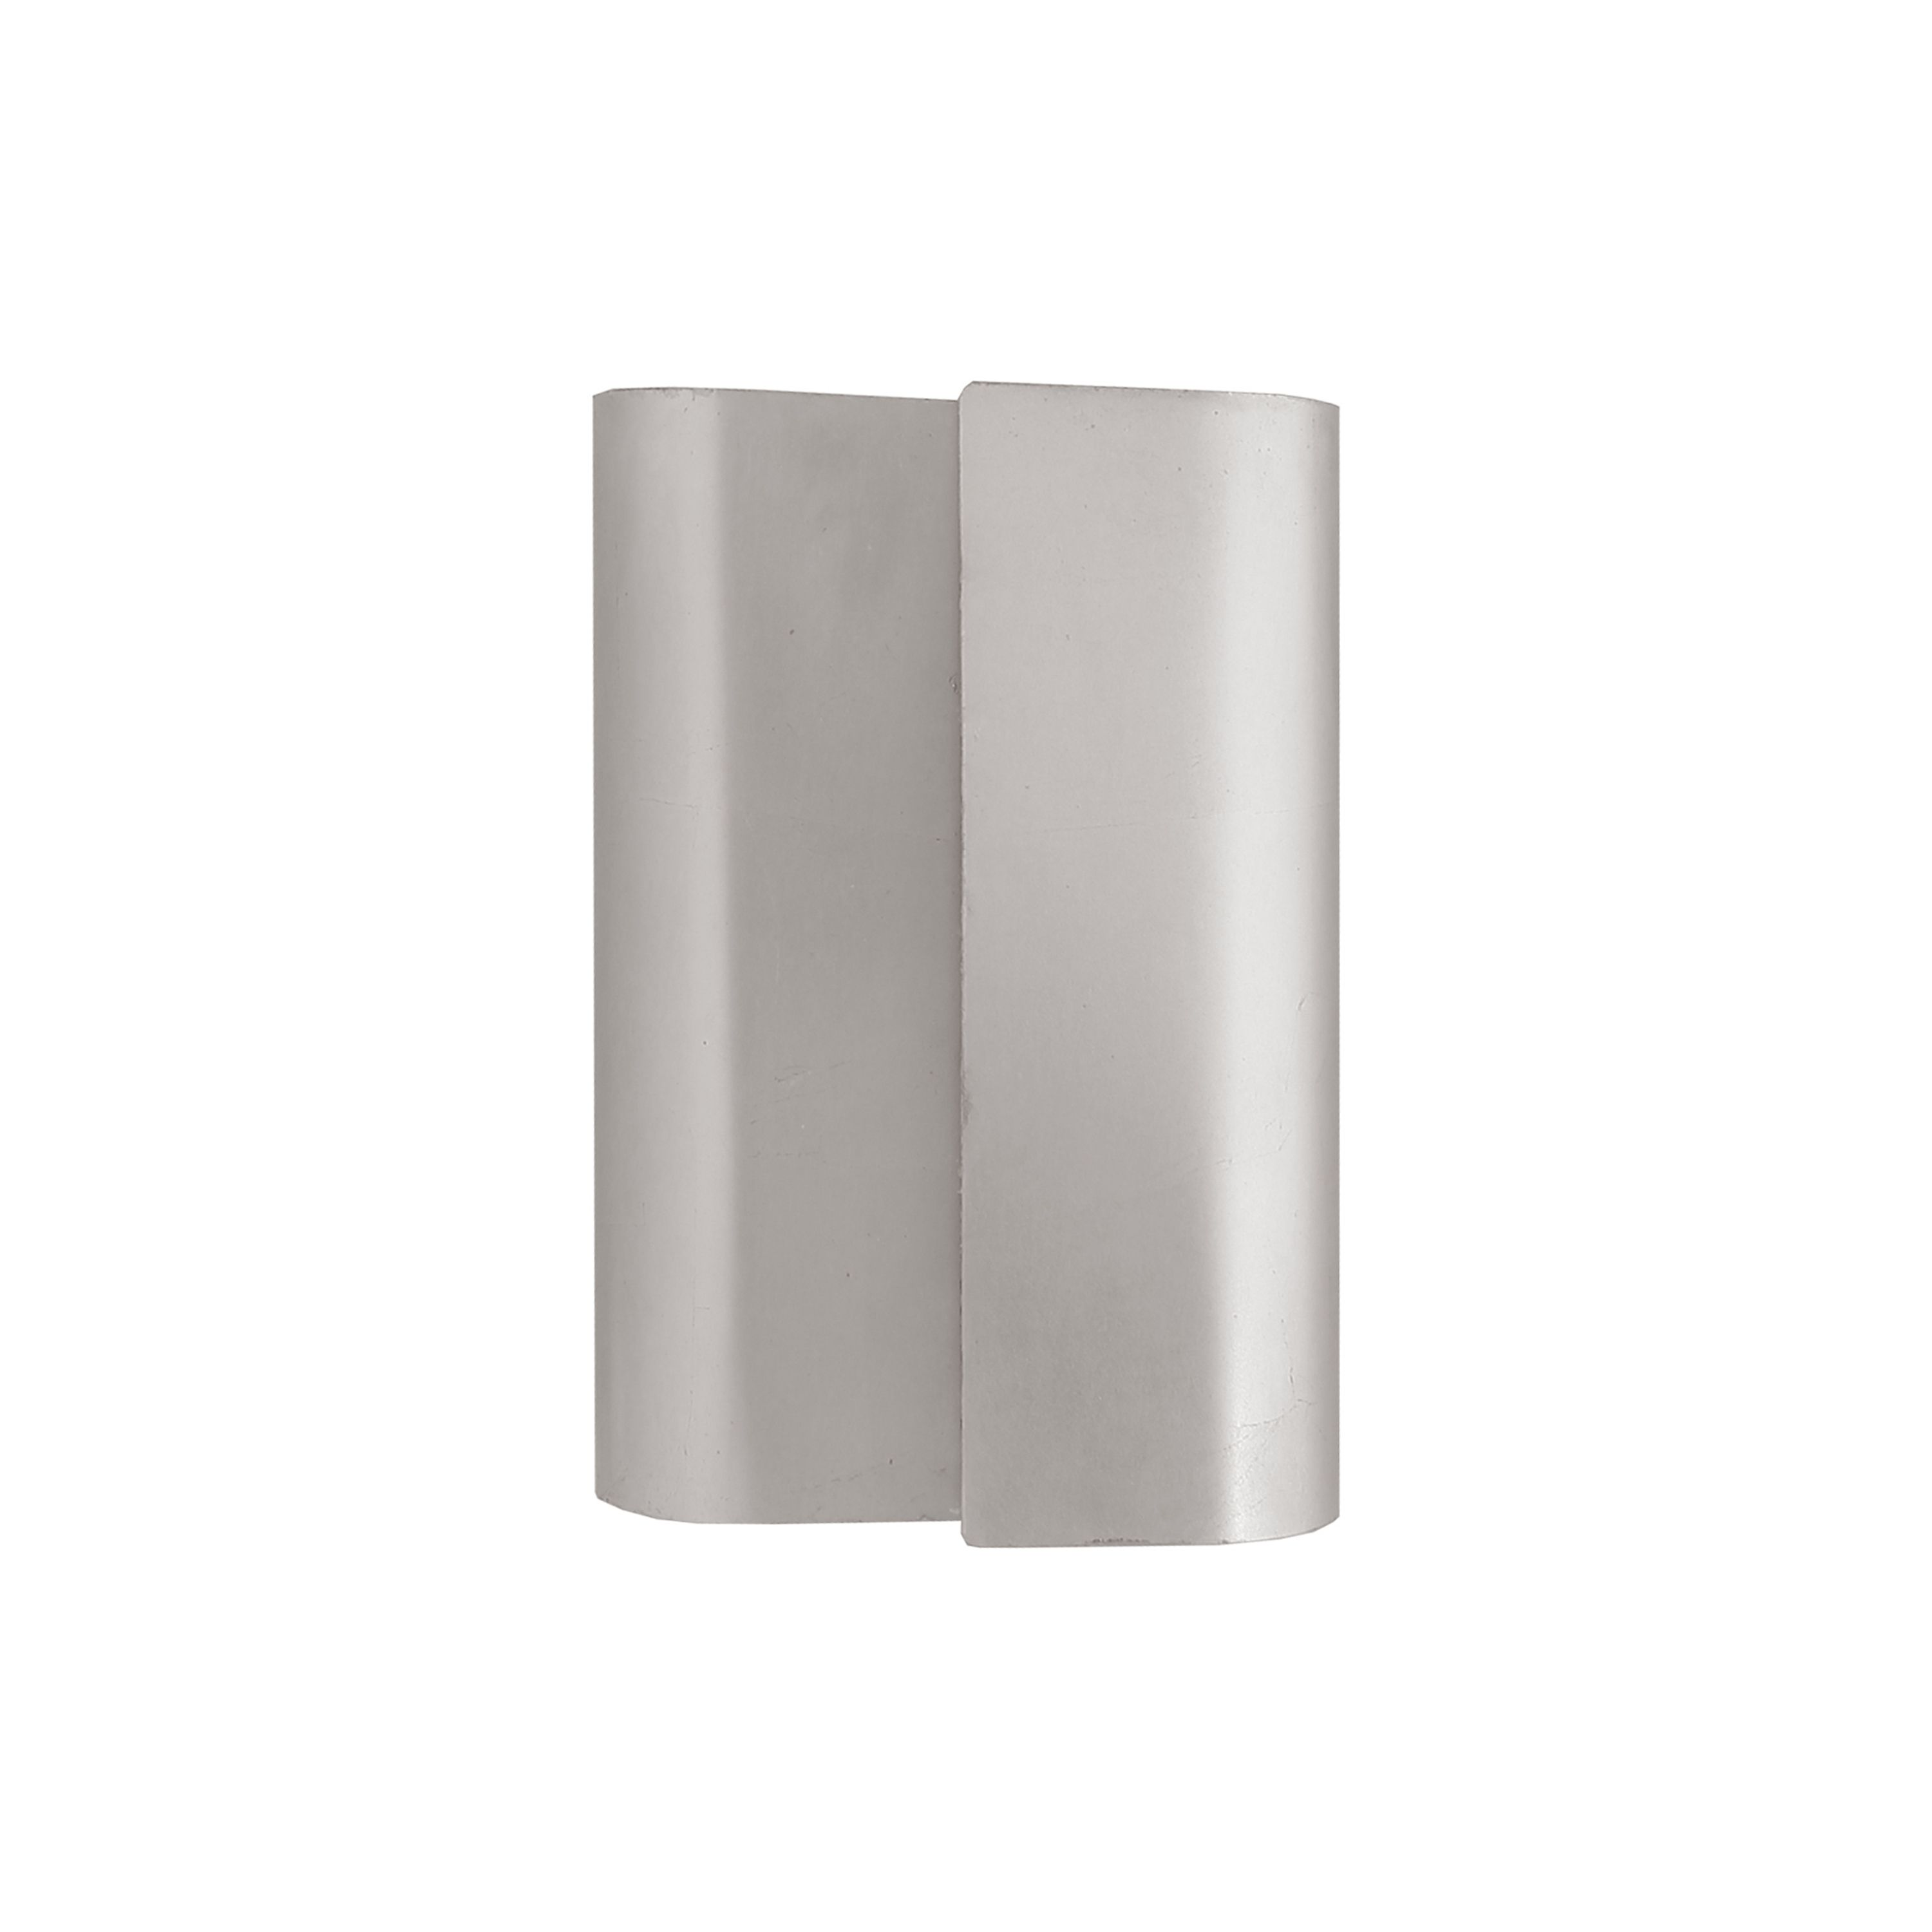 Sculptural Metal Wall Sconce in Silver Leaf